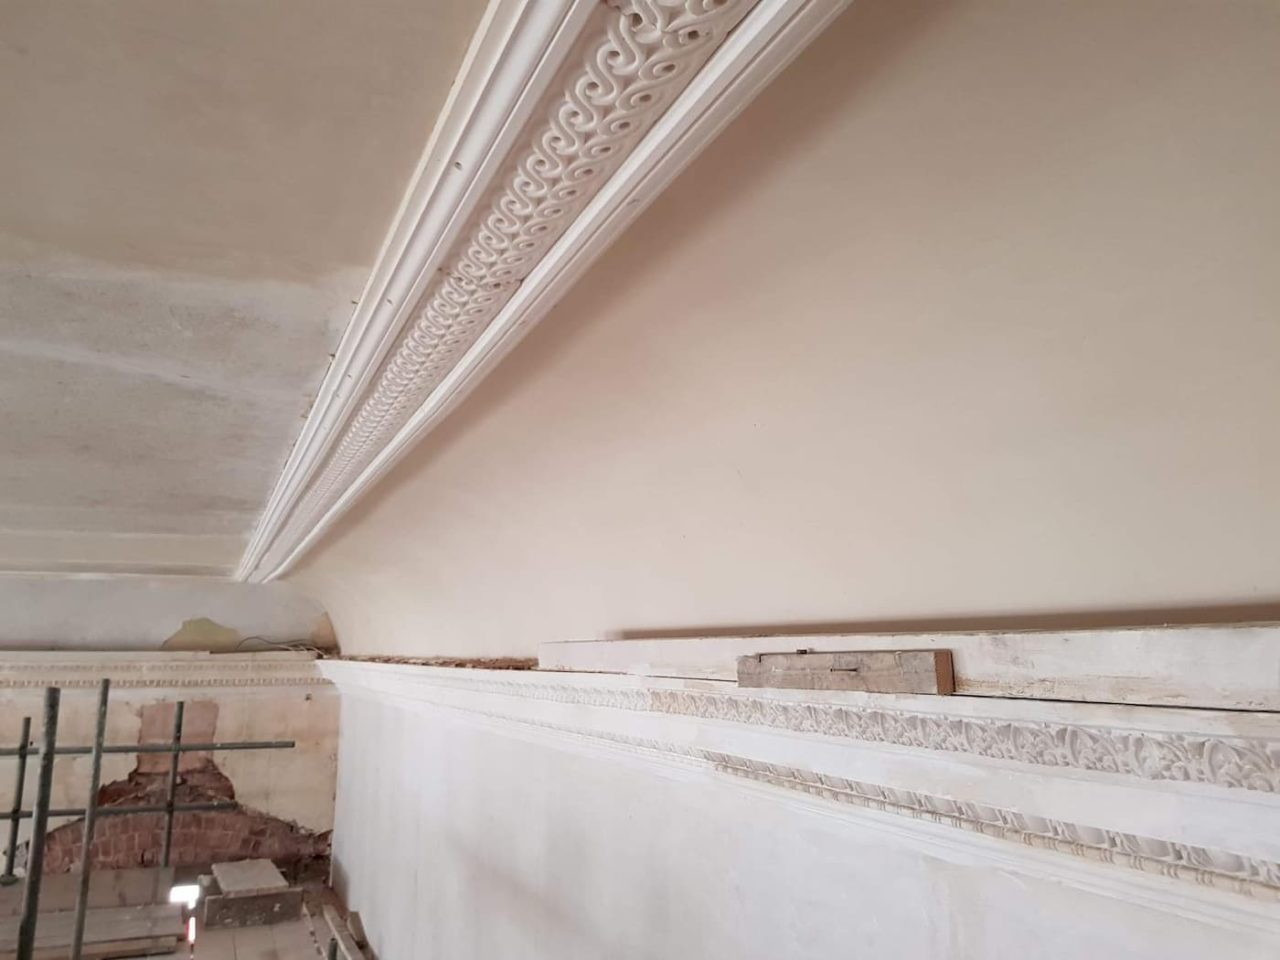 Formal plastering in lime